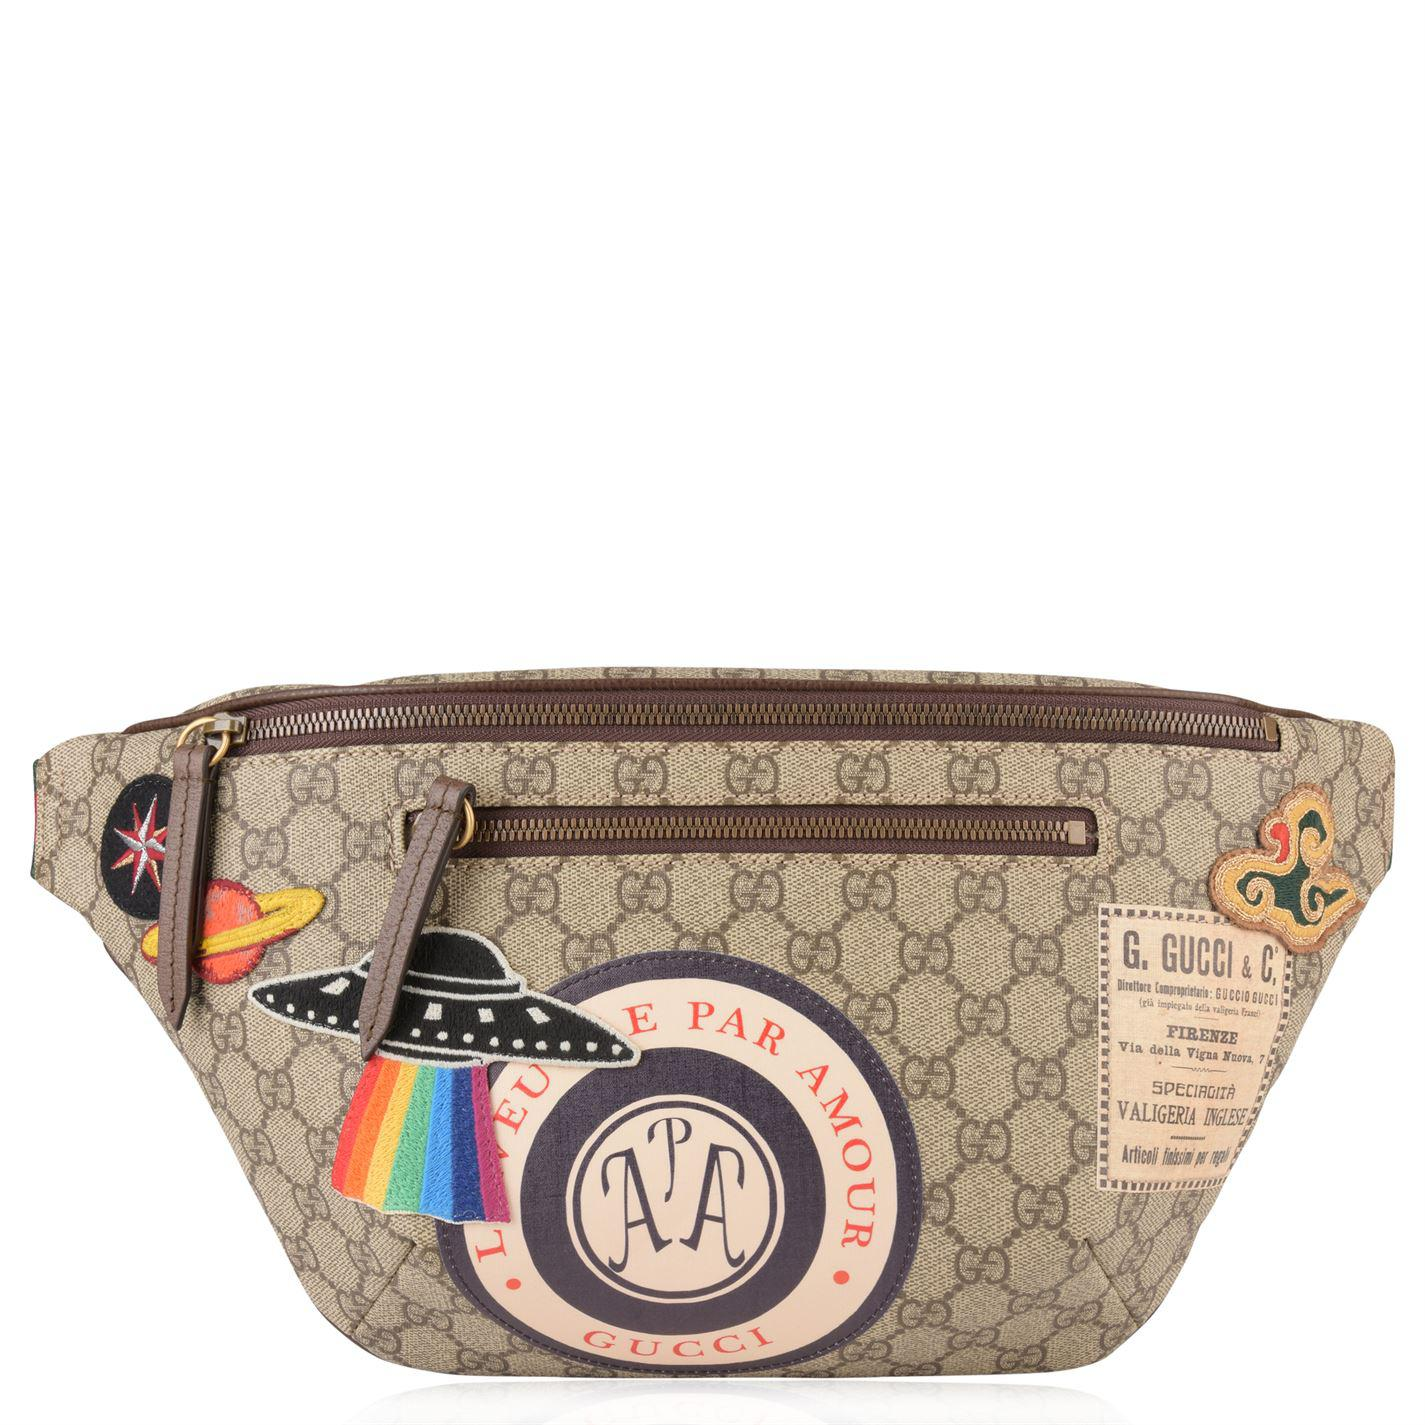 4abadf26e78 Gucci Gg Supreme Patch Belt Bag in Natural - Lyst